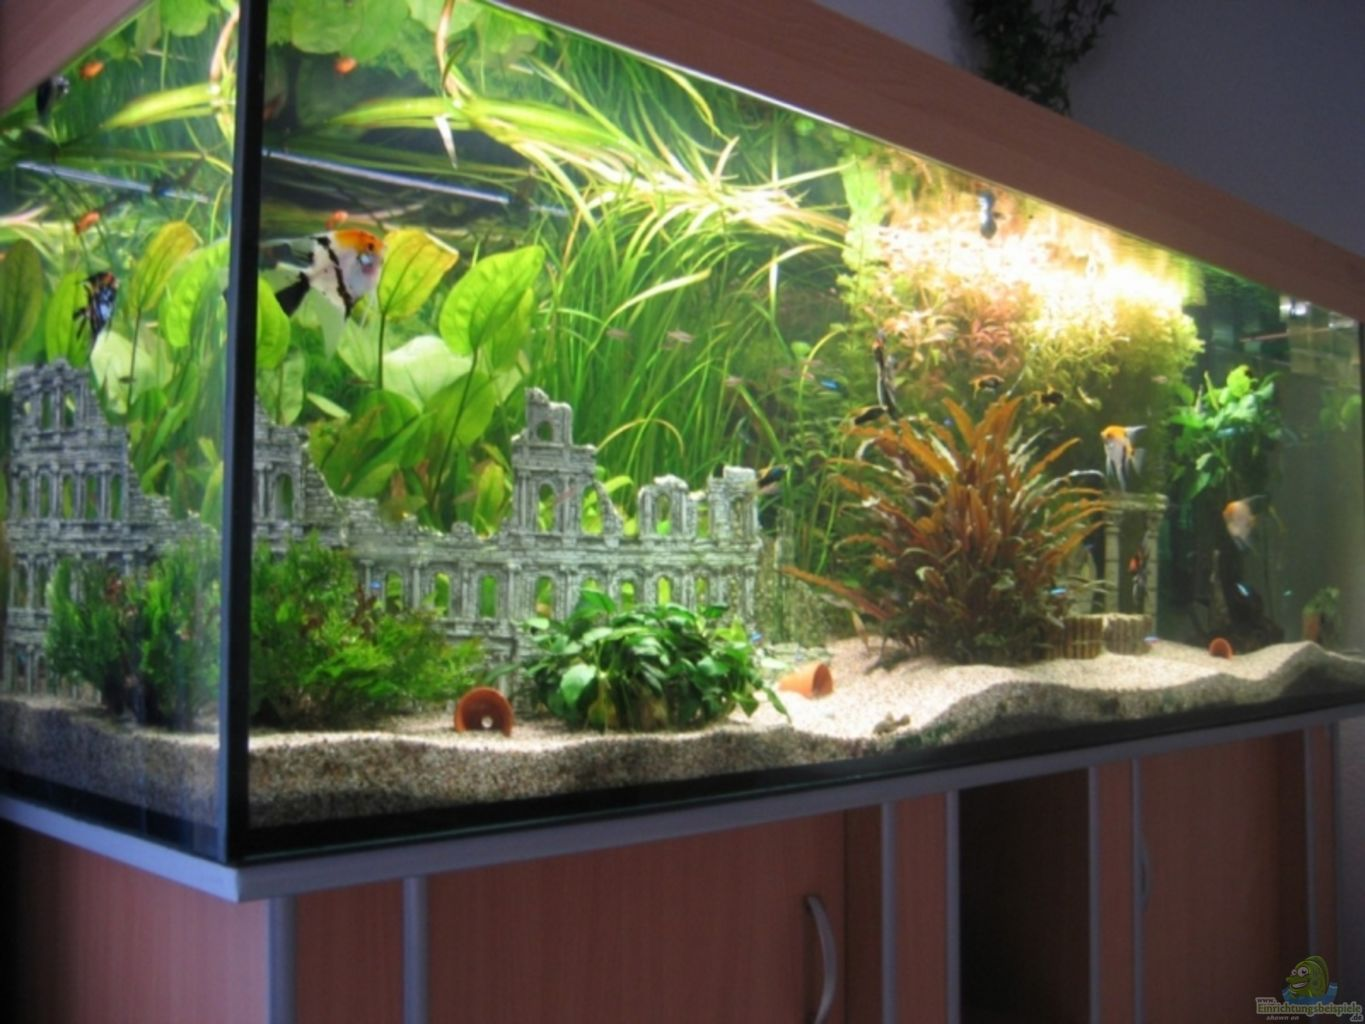 aquarium deko ideen great garten deko ideen u motelindio garten ideen gestaltung with aquarium. Black Bedroom Furniture Sets. Home Design Ideas